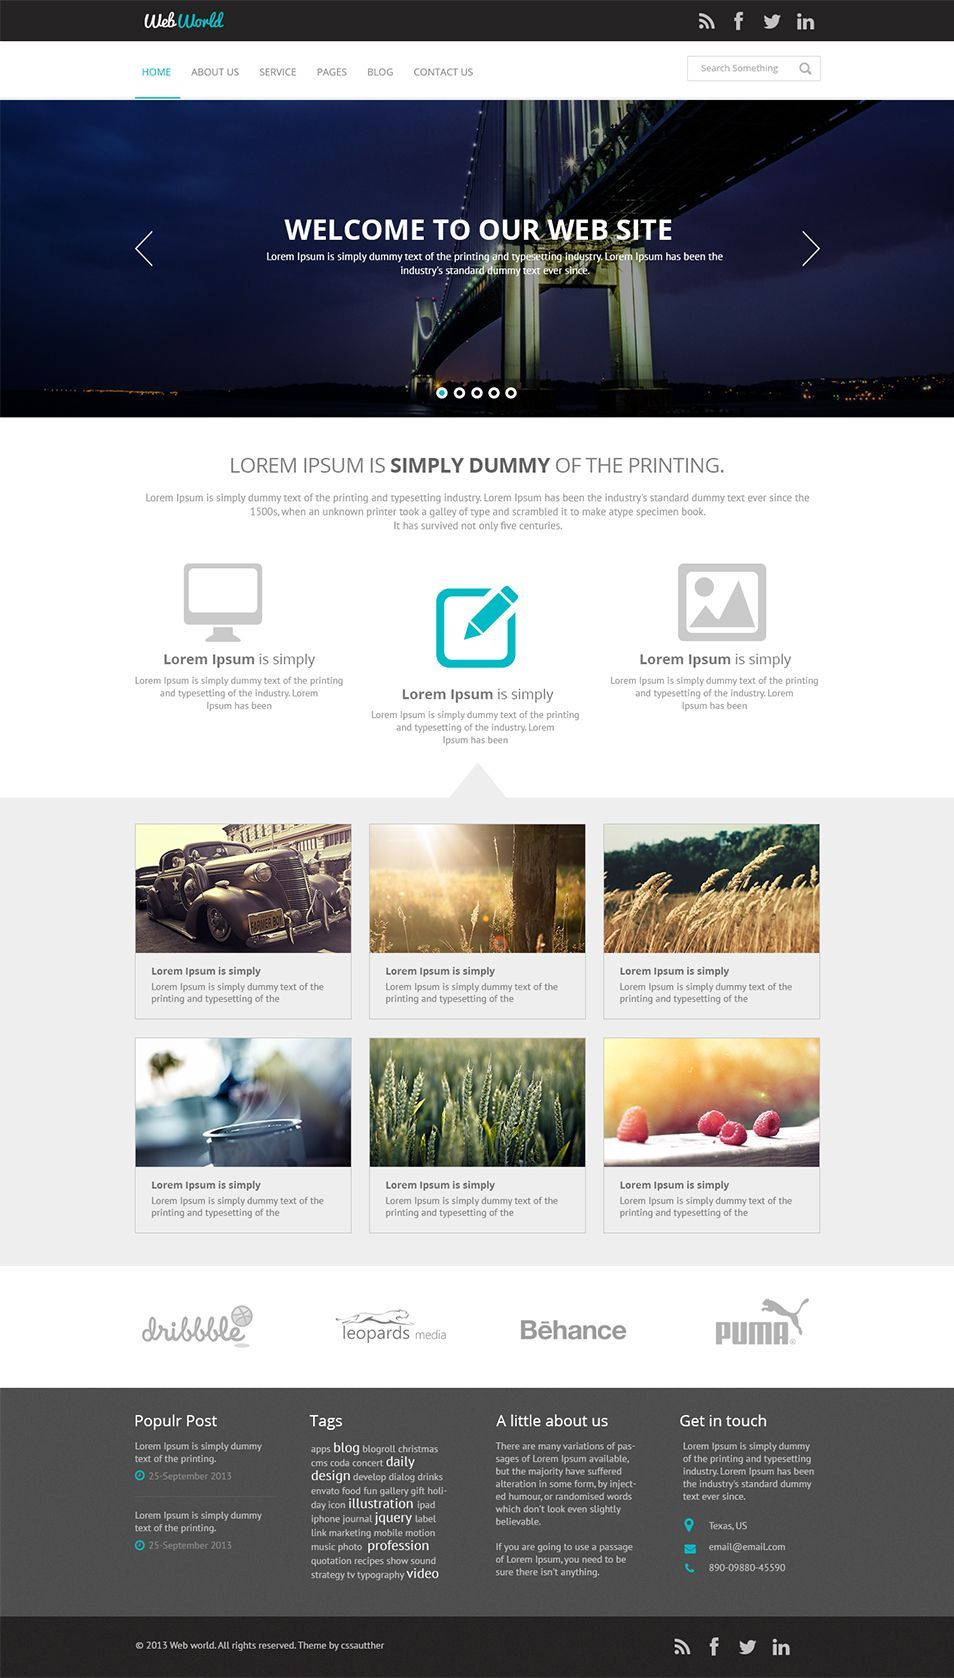 001 Dreaded Free Cs Professional Website Template Download Image  Html With JqueryFull